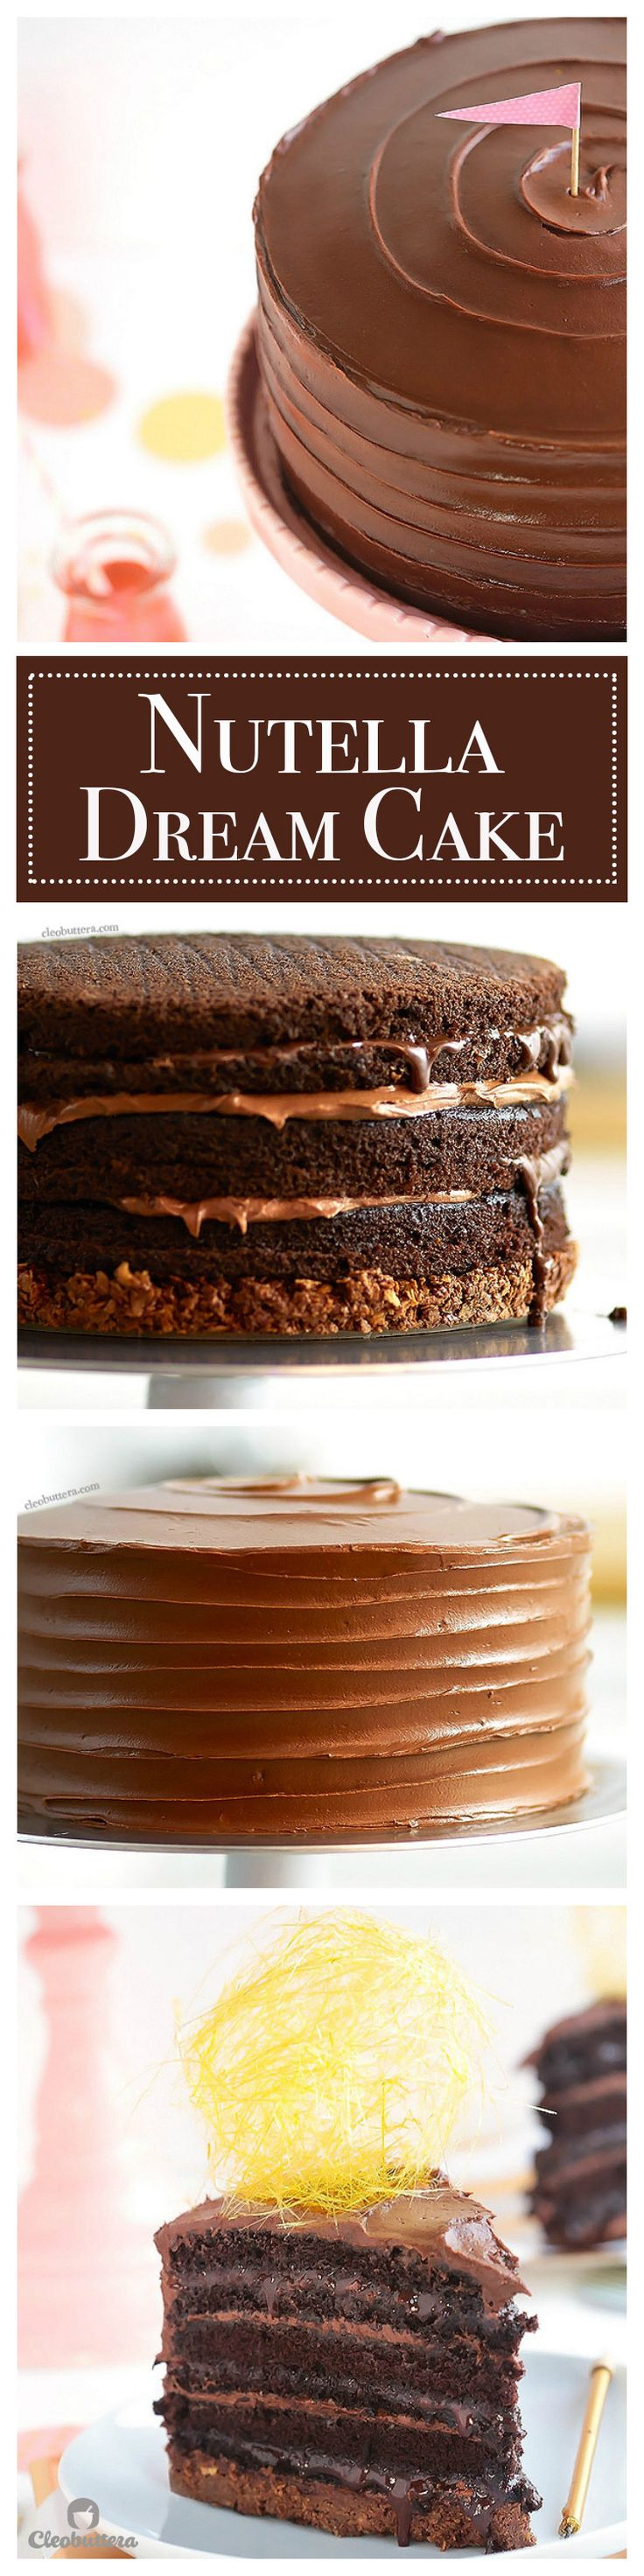 Hands down the ULTIMATE Nutella Cake!  With an embarrassing amount of Nutella between the frosting, sauce-y filling and crunchy bottom, this impossibly moist layer cake is a Nutella lover's dream come true!  {VIDEO of the making included!}